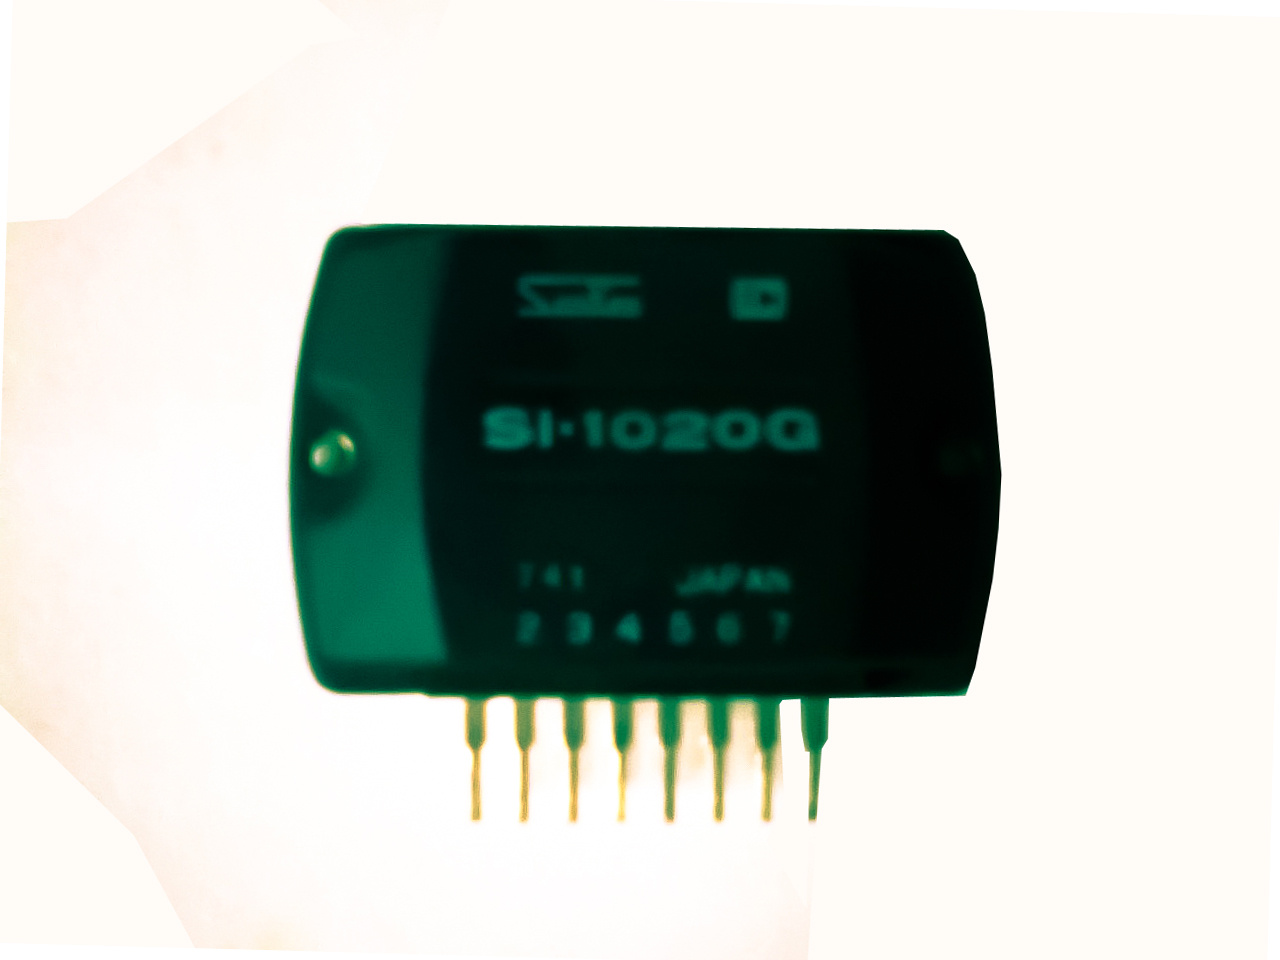 20w Surround Audio Amplifier With Si 1020g Gambar Skema Rangkaian Frequency Based Lm1875 Ic